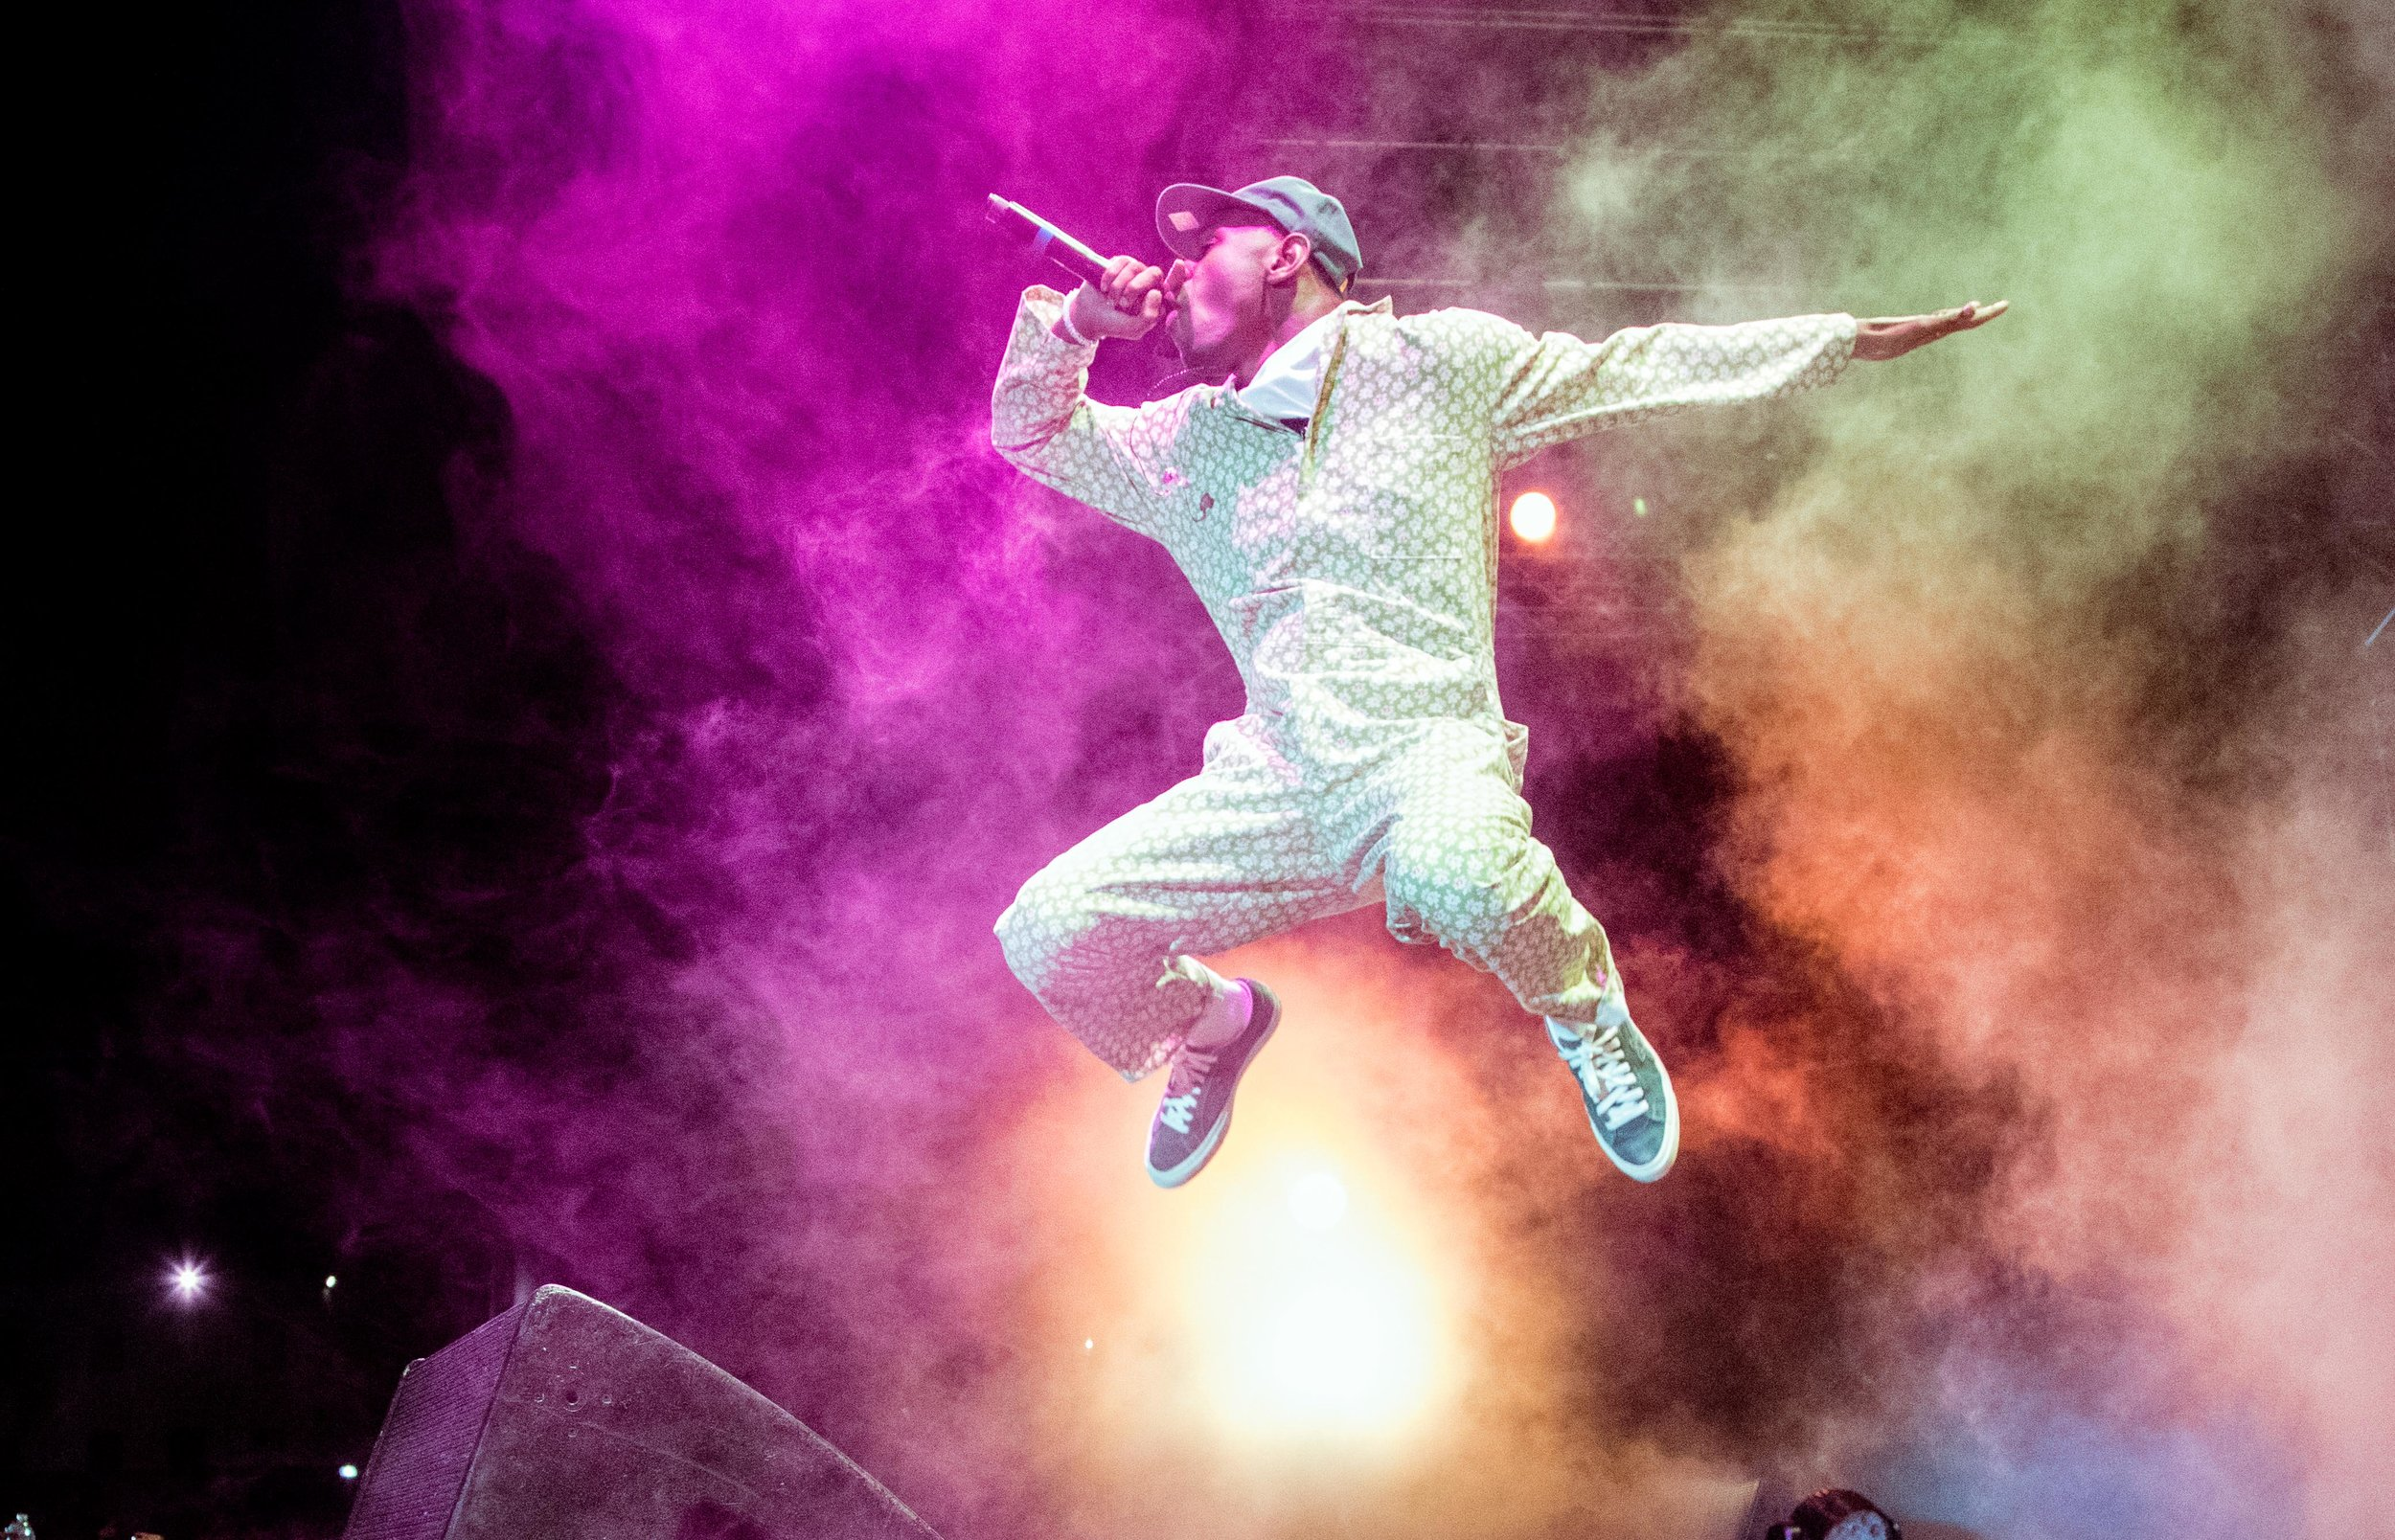 Tyler, The Creator, performer and creator the Camp Flog Gnaw,  gives an explosive performace on night 1 of music festival Camp Flog Gnaw Carnival in Los Angeles, Calif. The festival was held on October 28, 2017 as part of a 2 day event. (Photo: Jazz Shademan)